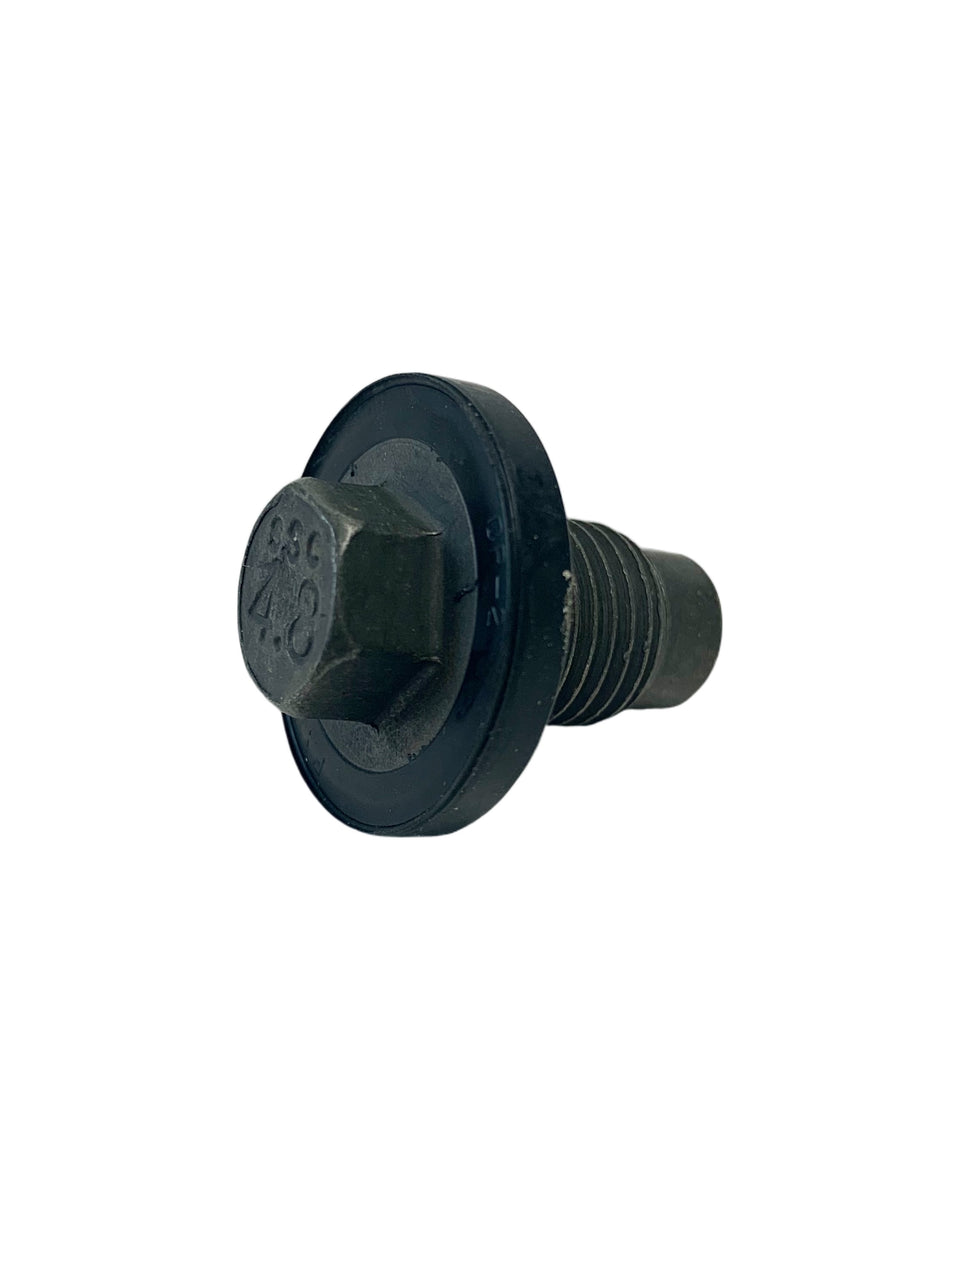 Chrysler Jeep Dodge Engine Oil Drain Plug 6506214-AA *Pack of 5*